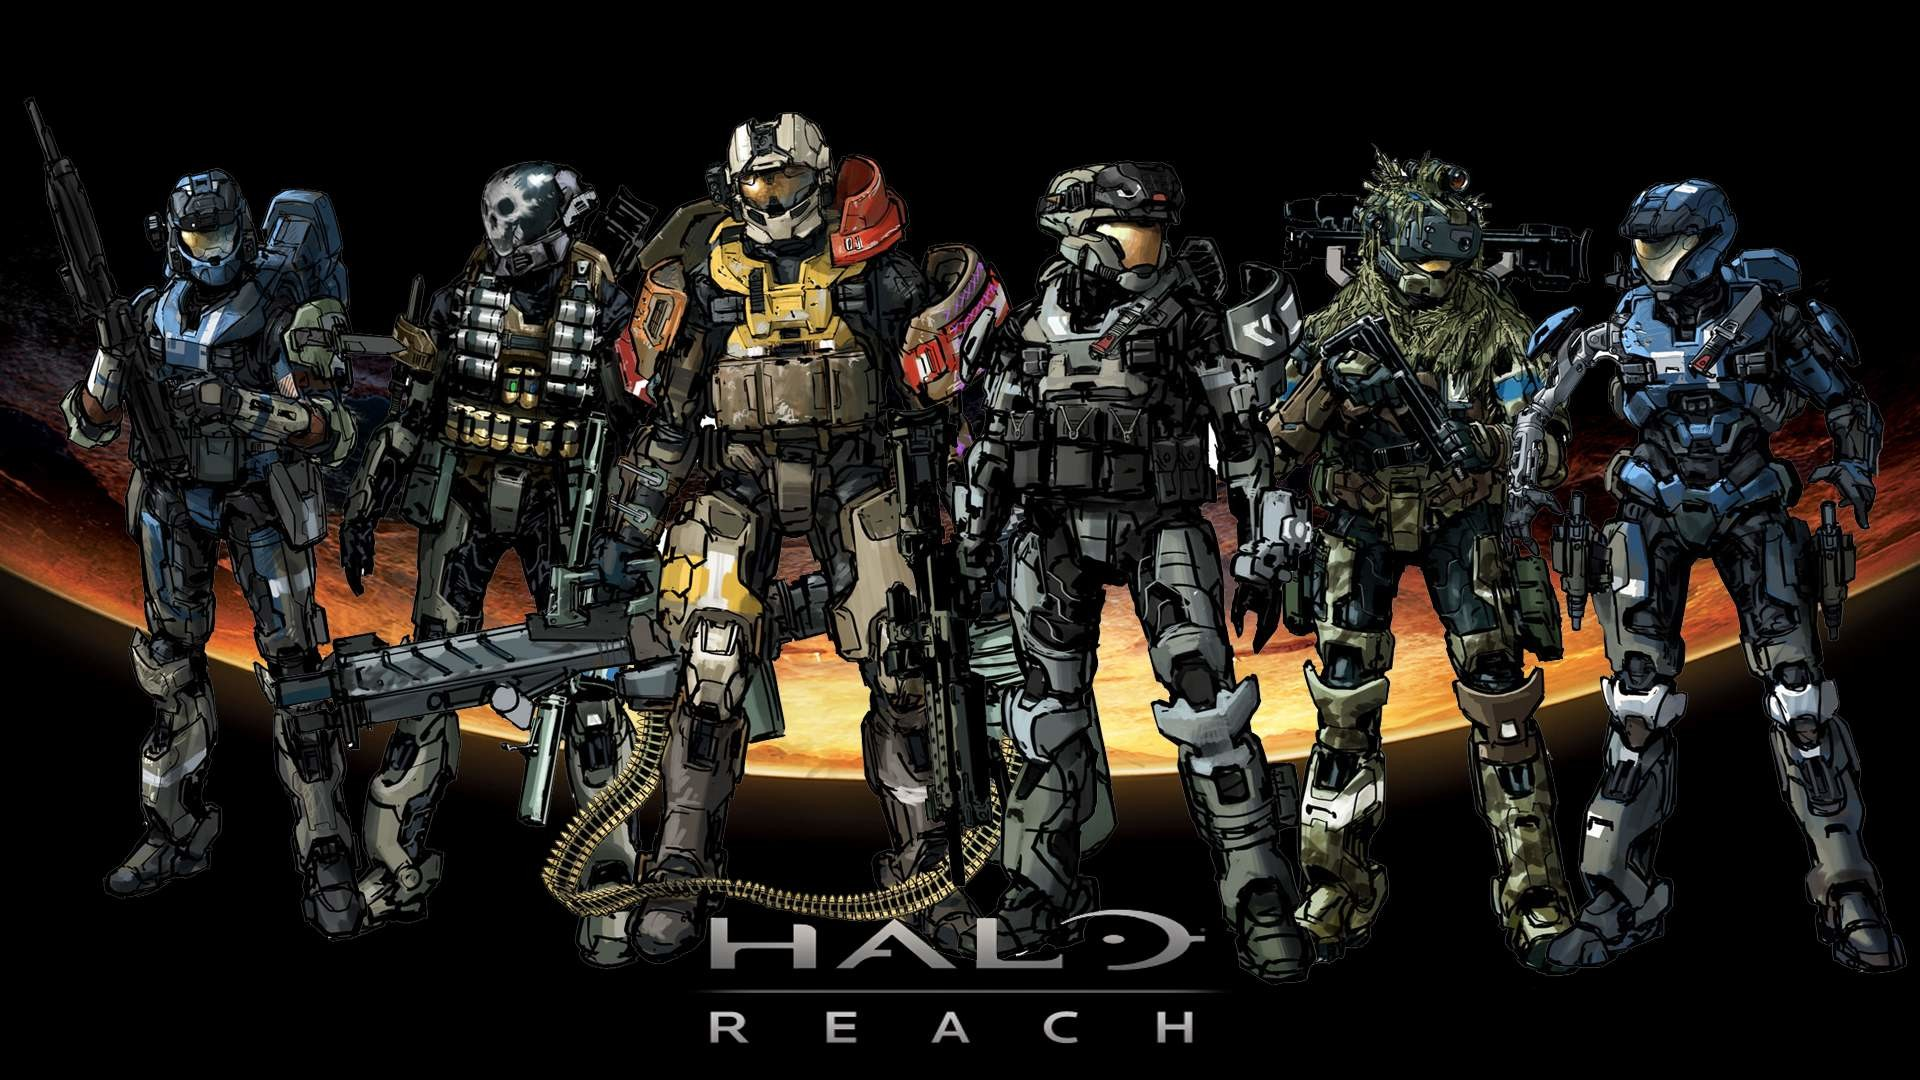 1920x1080 Halo Reach Hd Wallpapers and Background